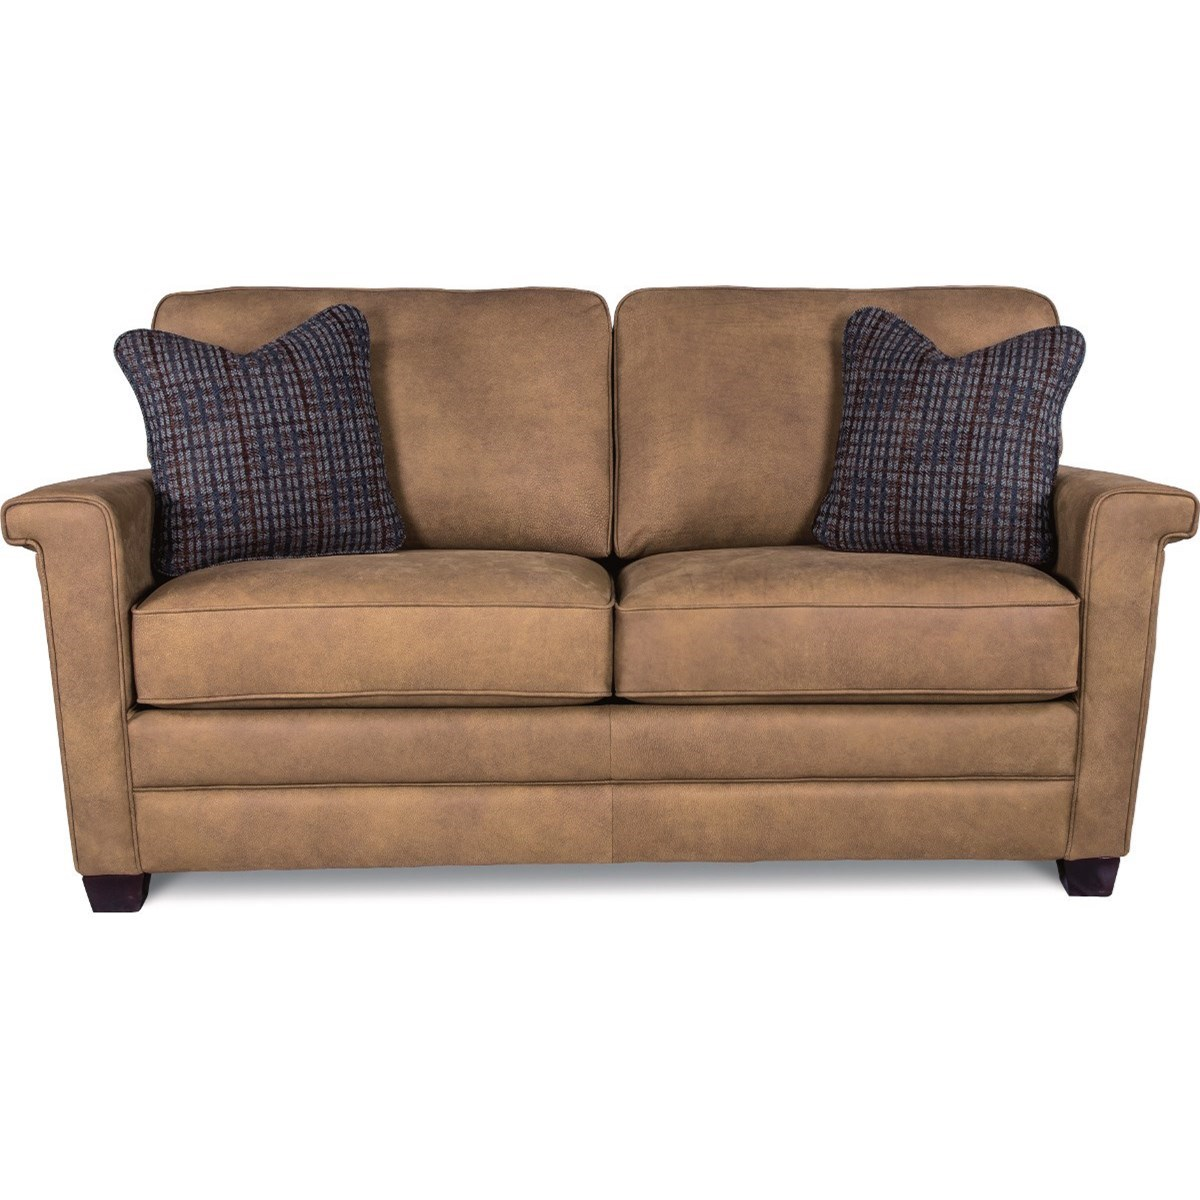 Bexley Supreme Comfort Full Sleep Sofa by La-Z-Boy at Jordan's Home Furnishings